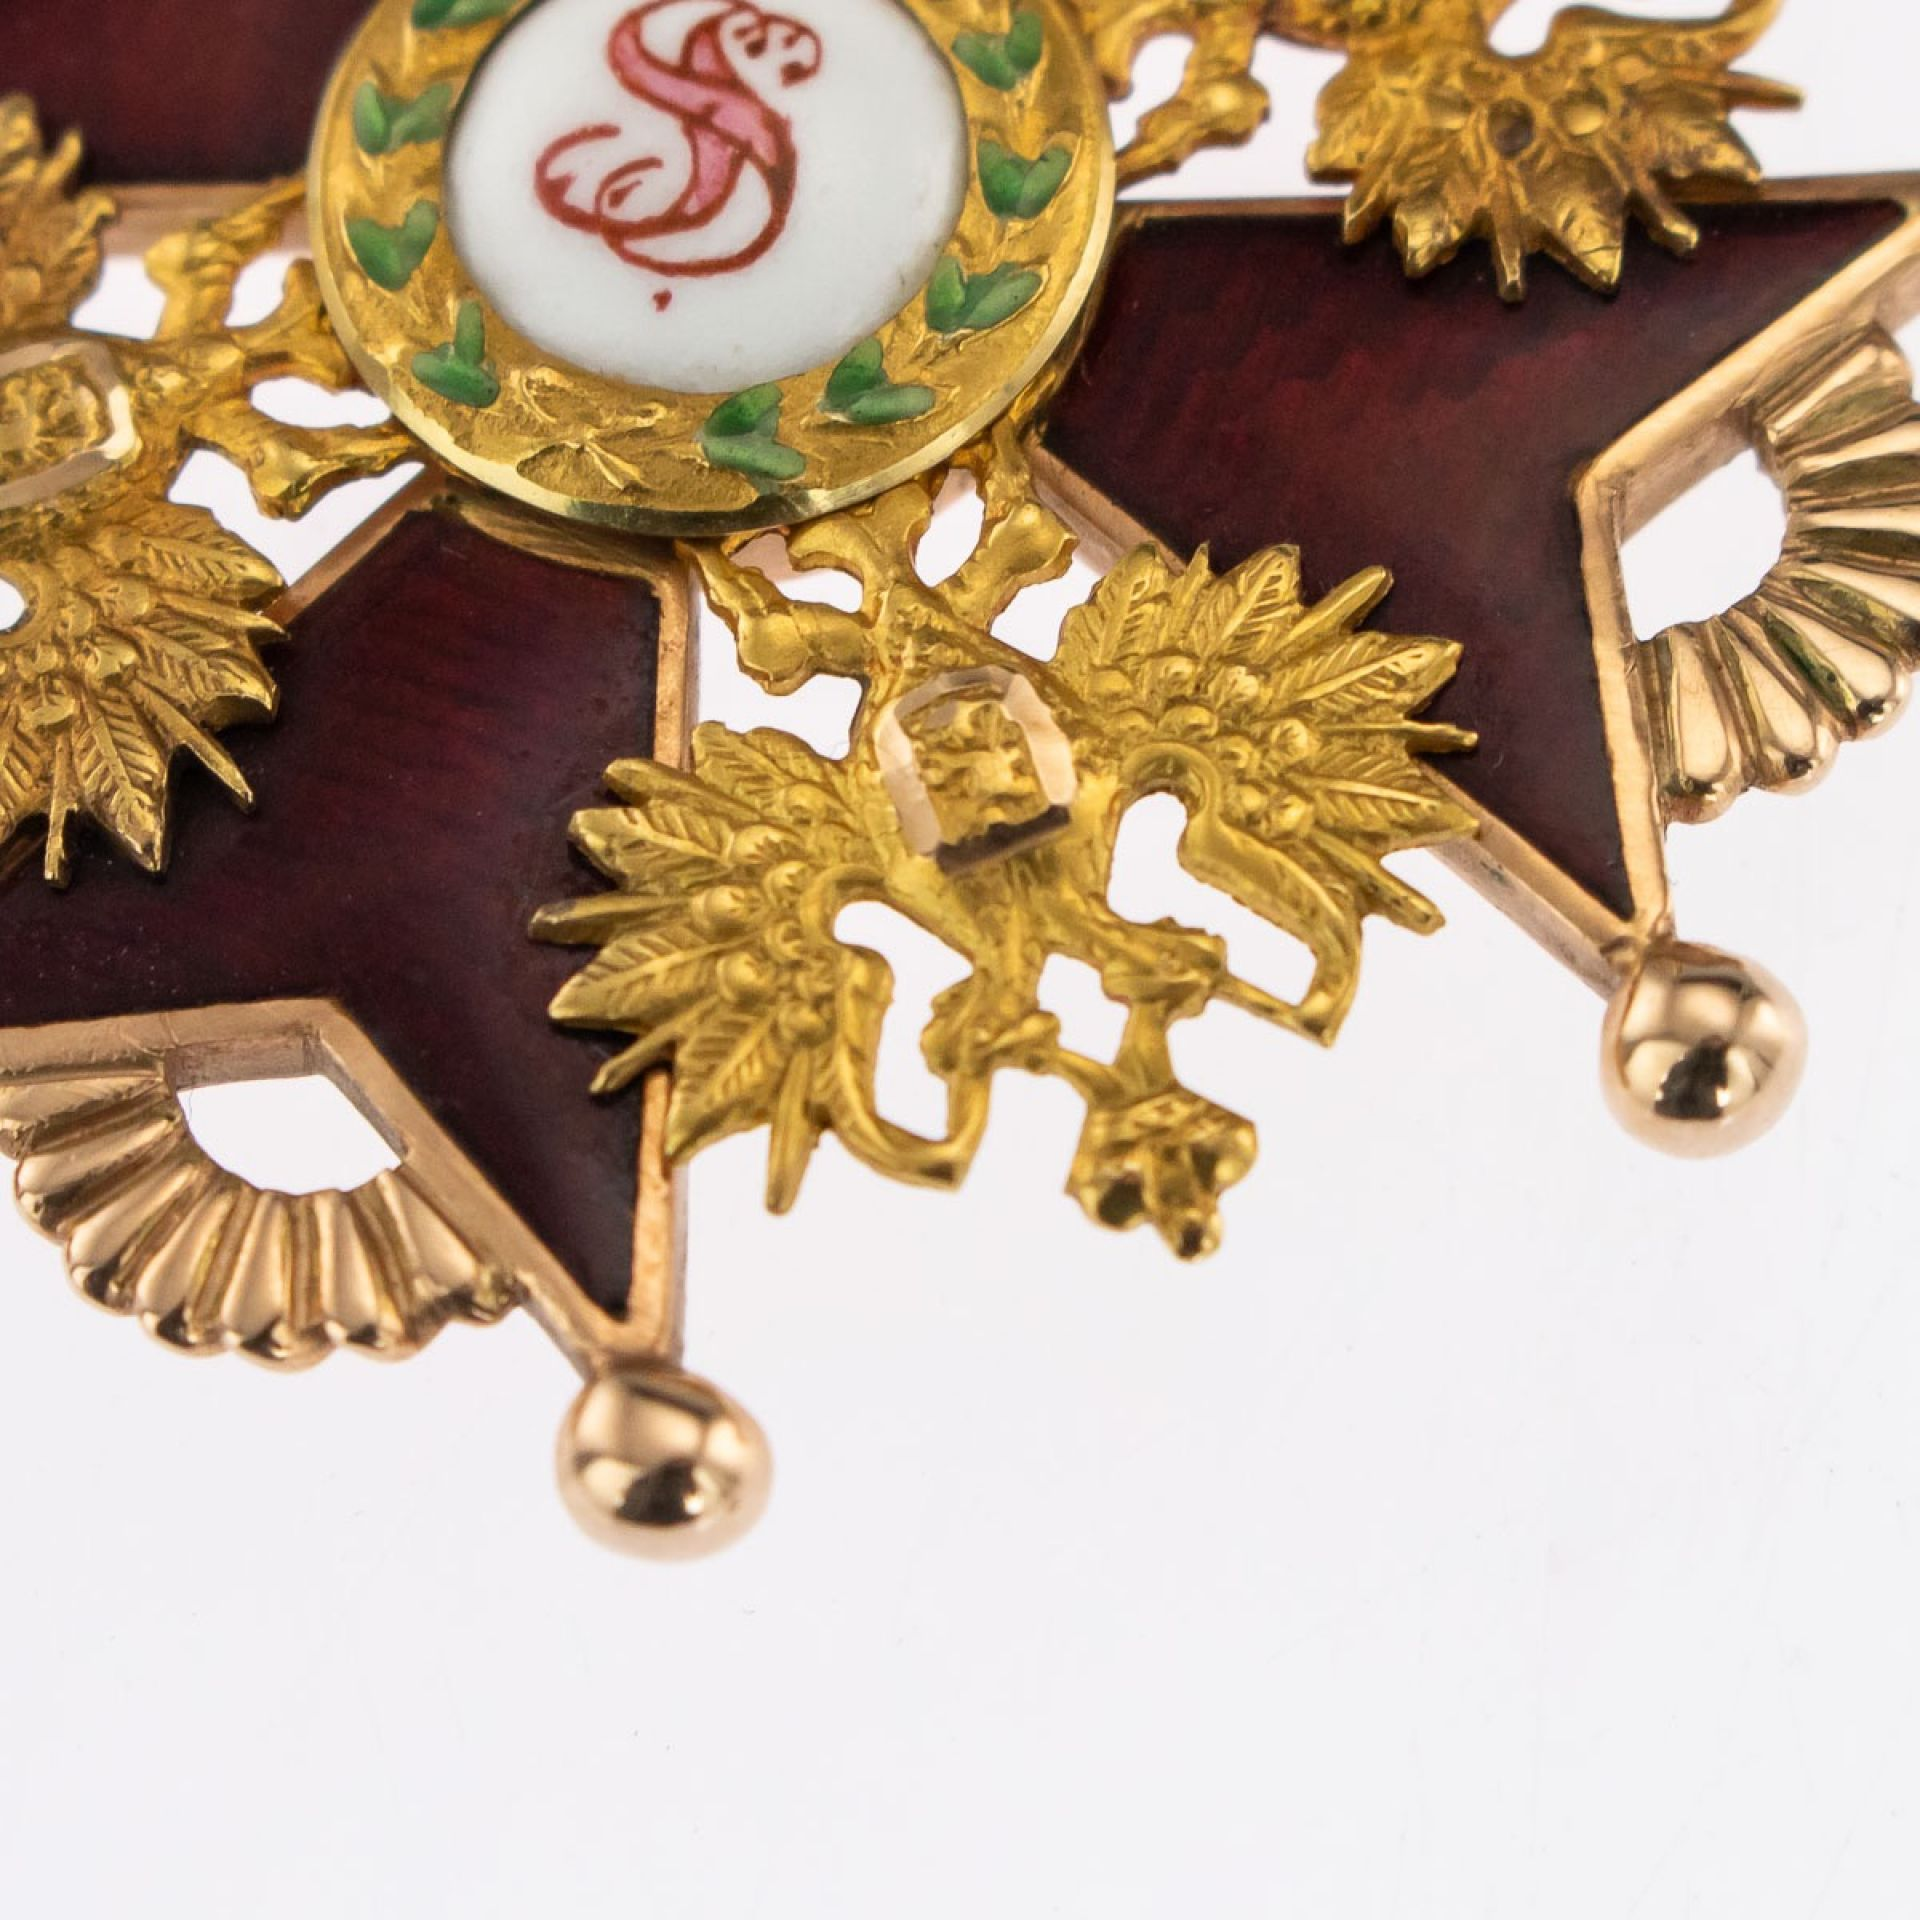 ANTIQUE 20thC RUSSIAN GOLD & ENAMEL 2ND CLASS ST.STANISLAUS MEDAL BADGE c.1900